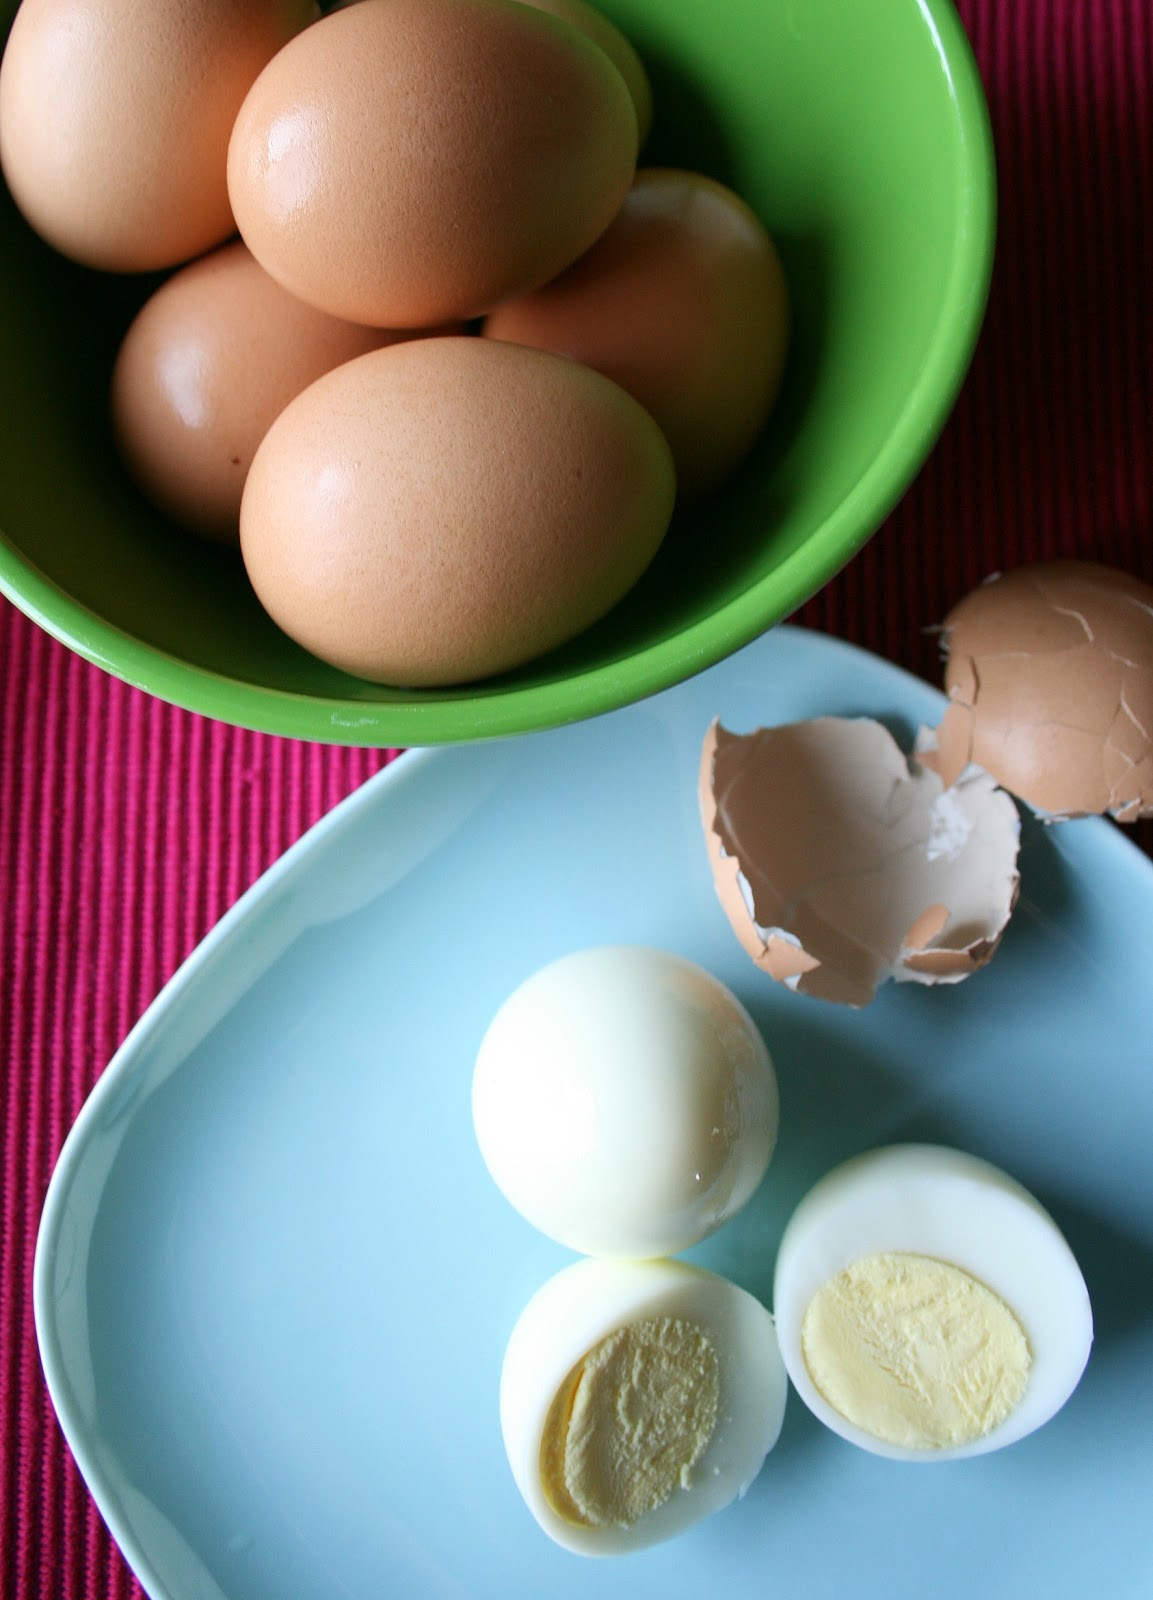 How To Make Perfect Hard Boiled Eggs In The Oven